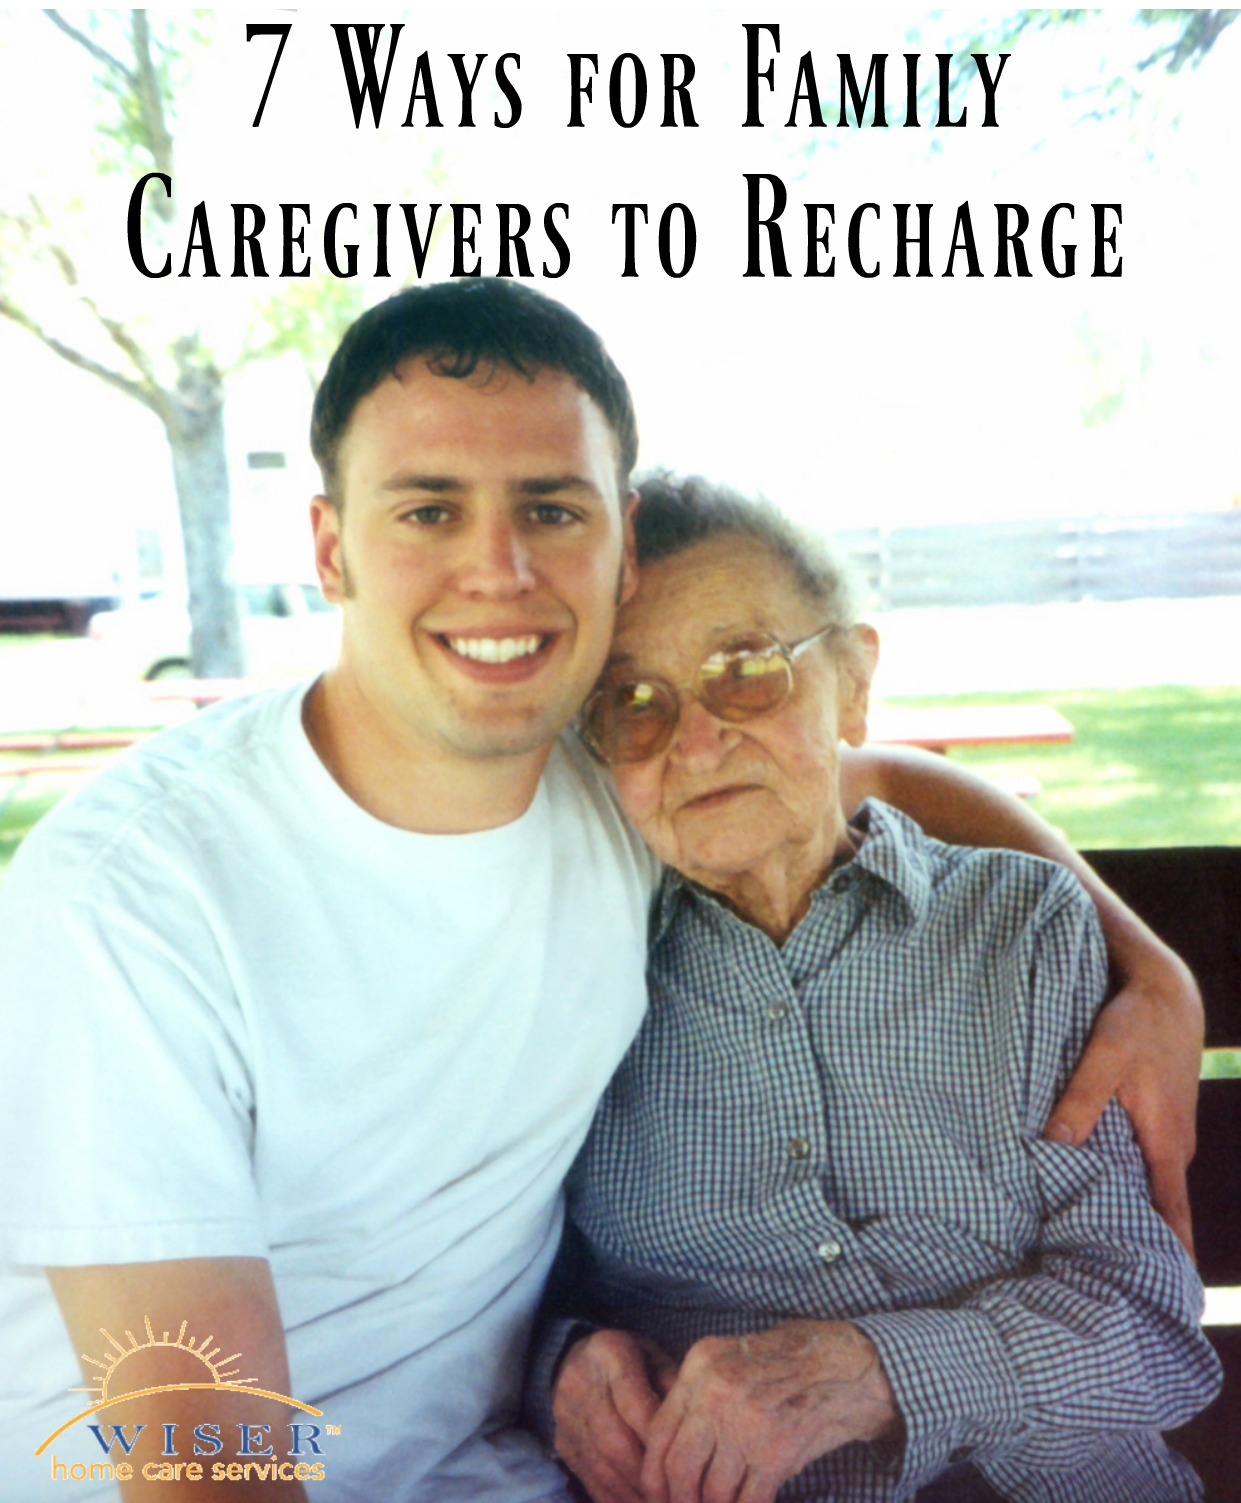 """Since the theme for National Family Caregivers month is """"Take Care to Give Care"""", the Wiser Home Care blog explores 7 ways family caregivers can recharge."""